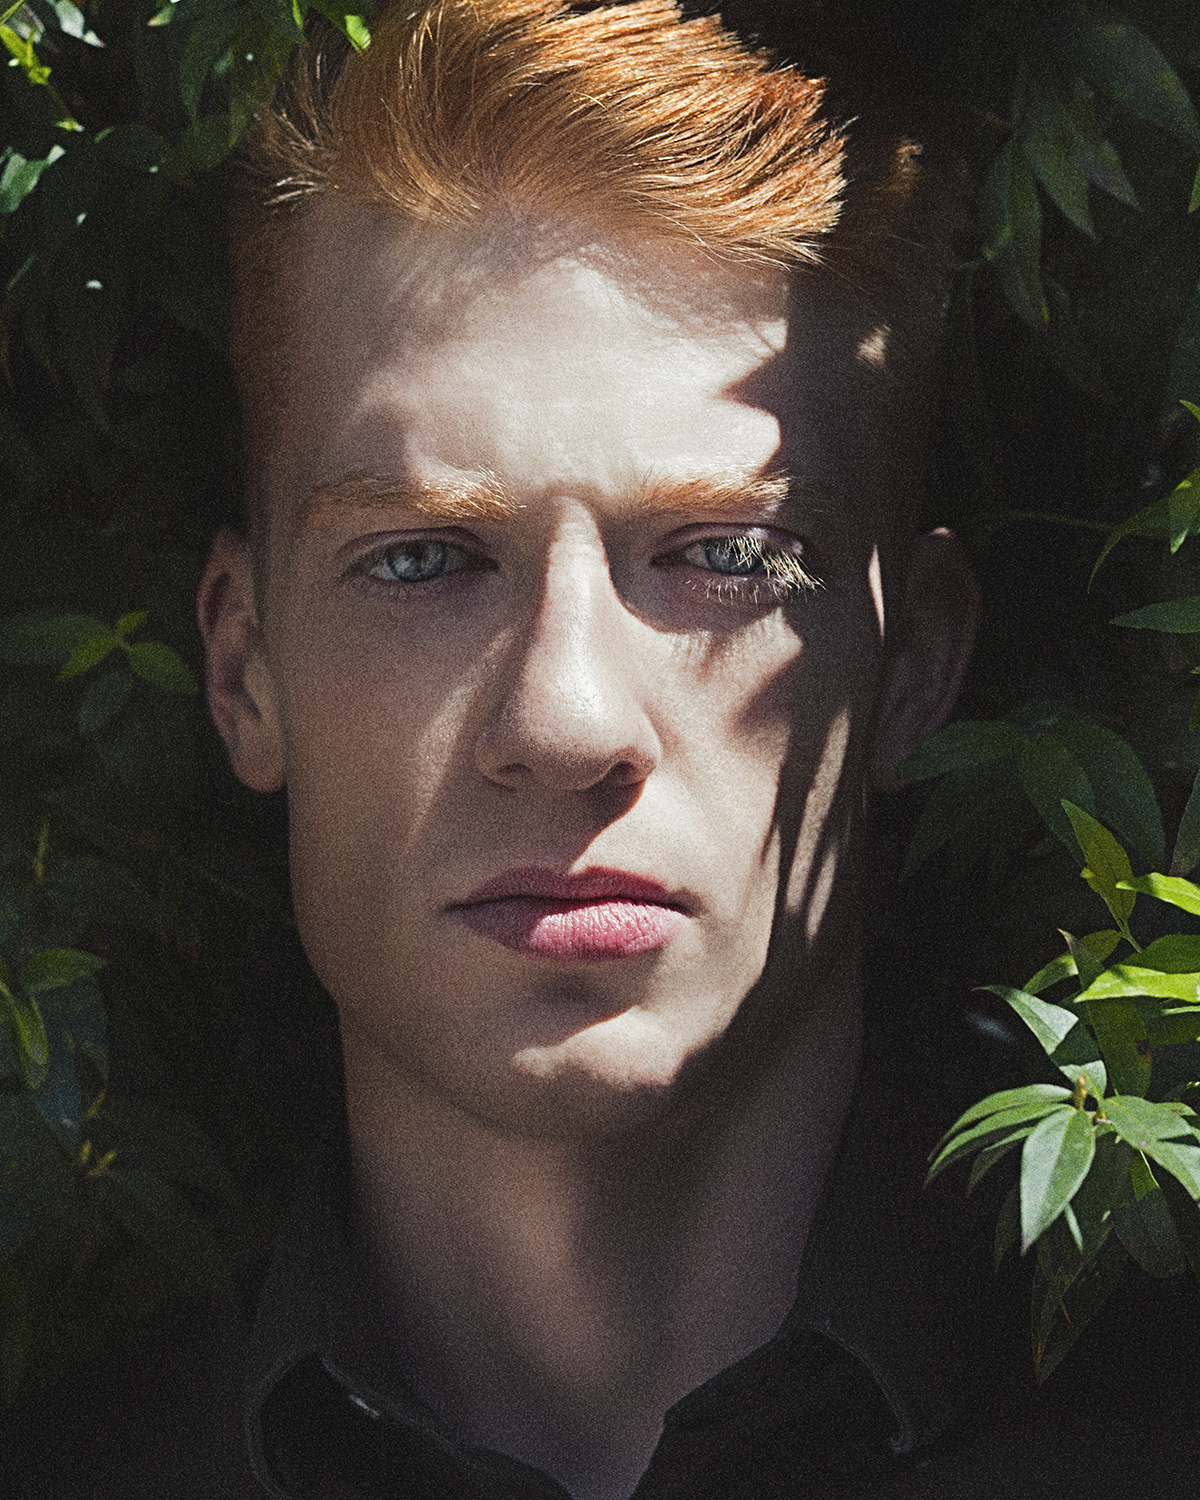 lauren nakao winn, photography, fashion, portrait, redhead, aja blue, vogue, male model, male beauty, male portrait